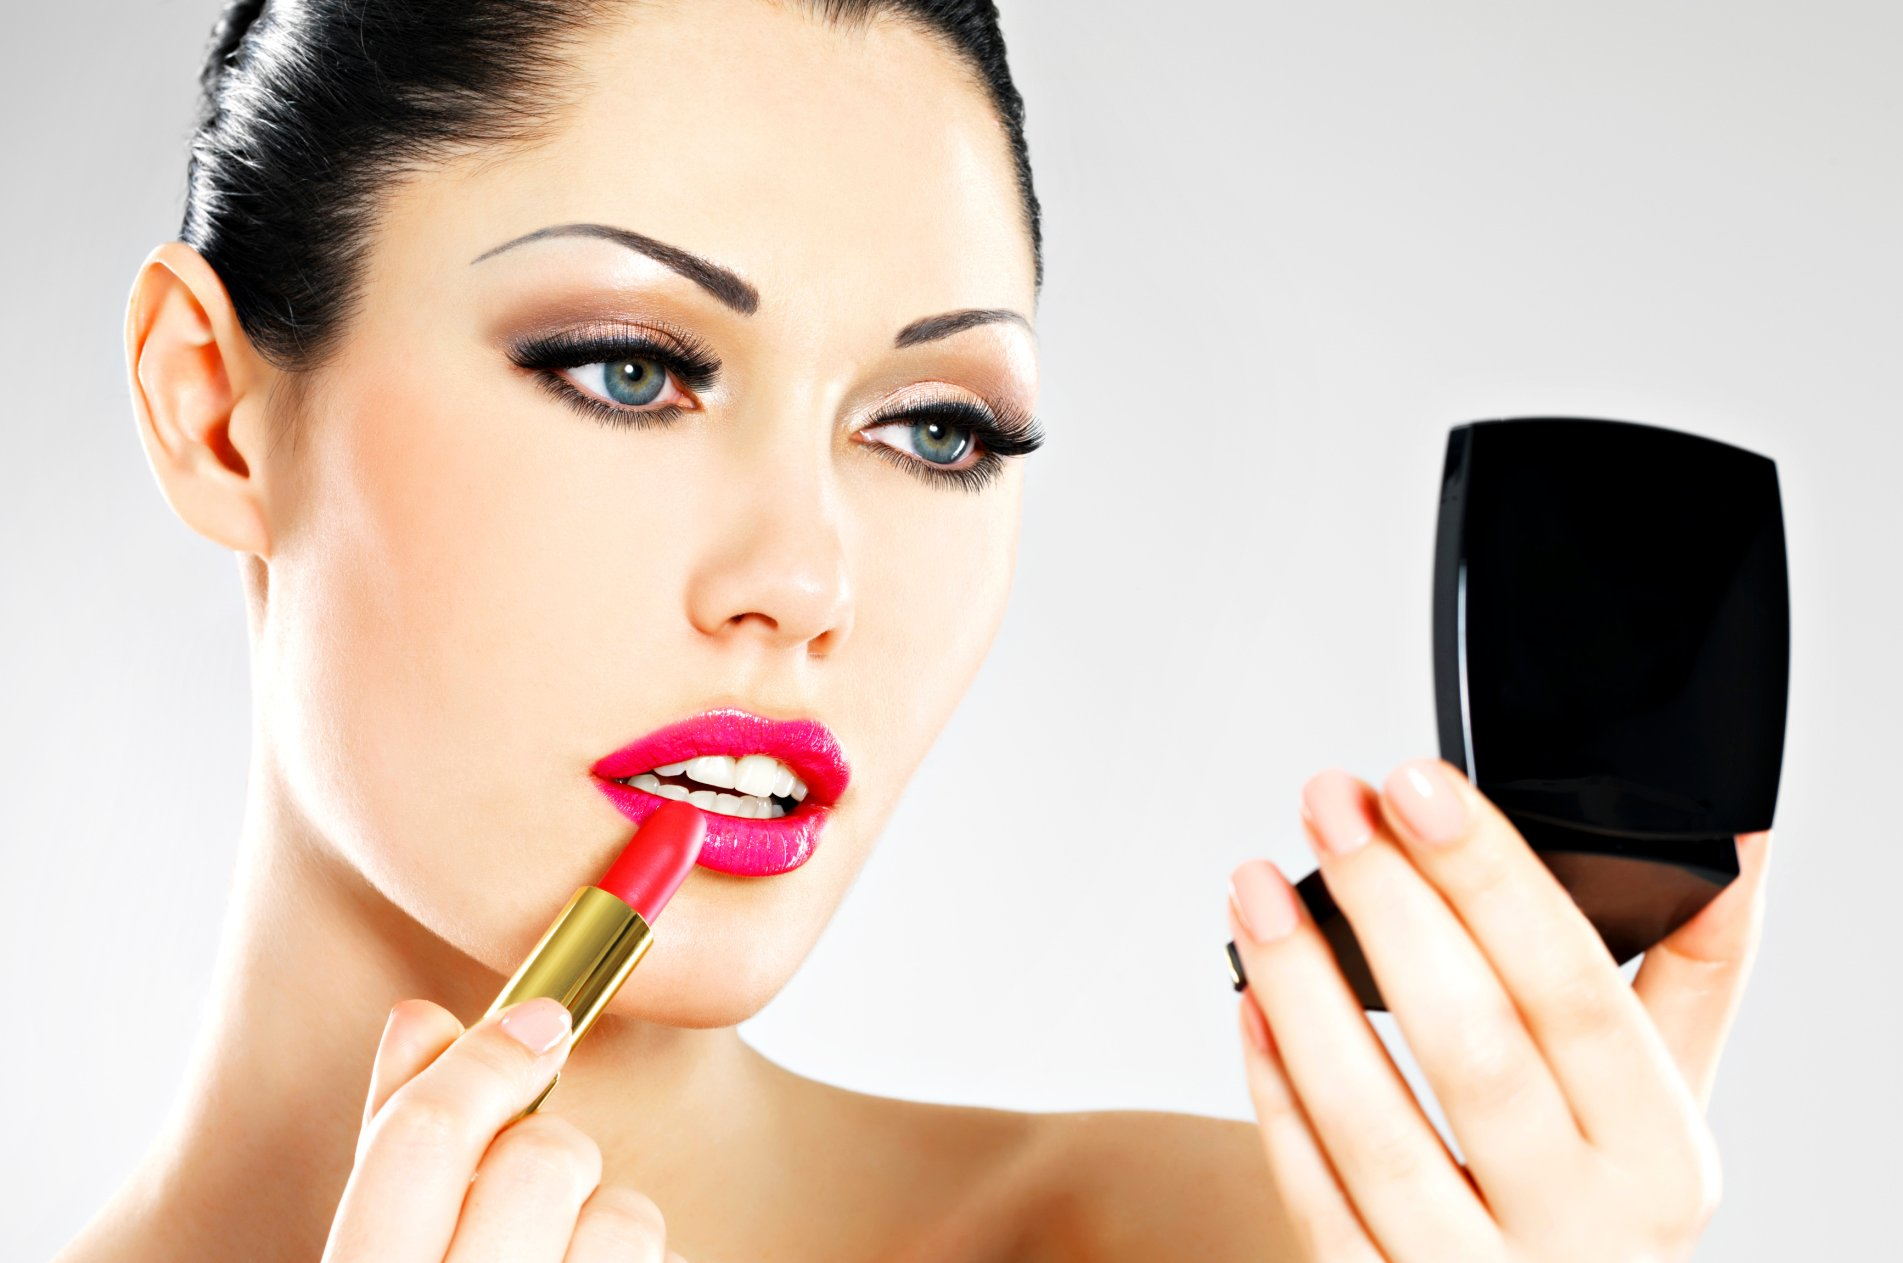 Hate Make-up? This One's For You